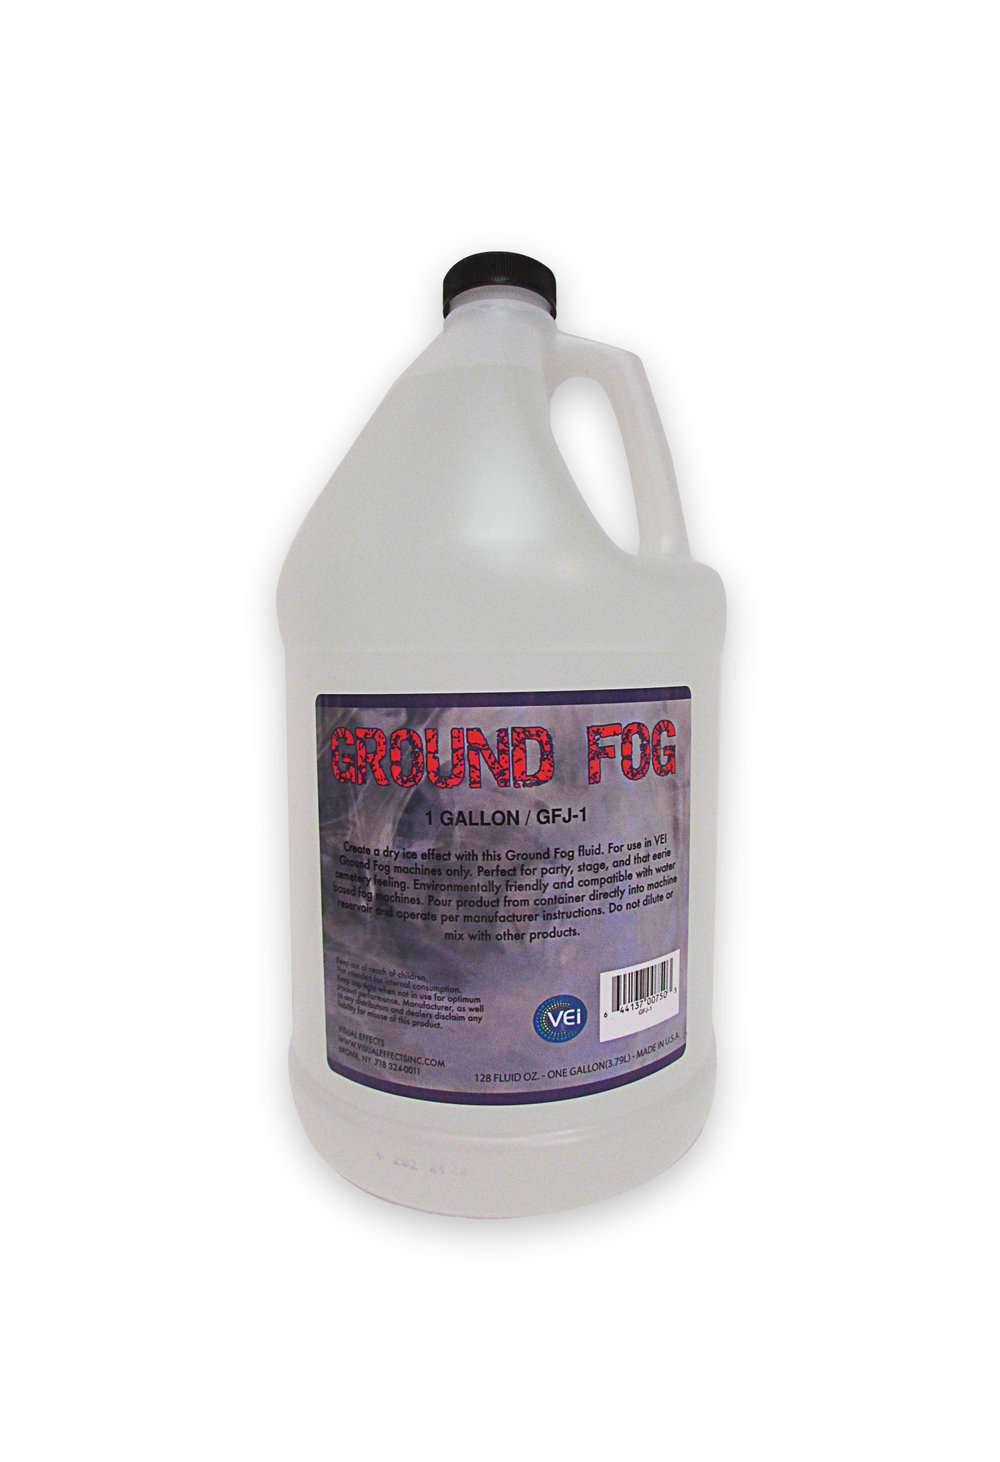 QFJ-1  GROUND FOG FLUID  Gallon  For use with all ground Foggers     -  Made In USA